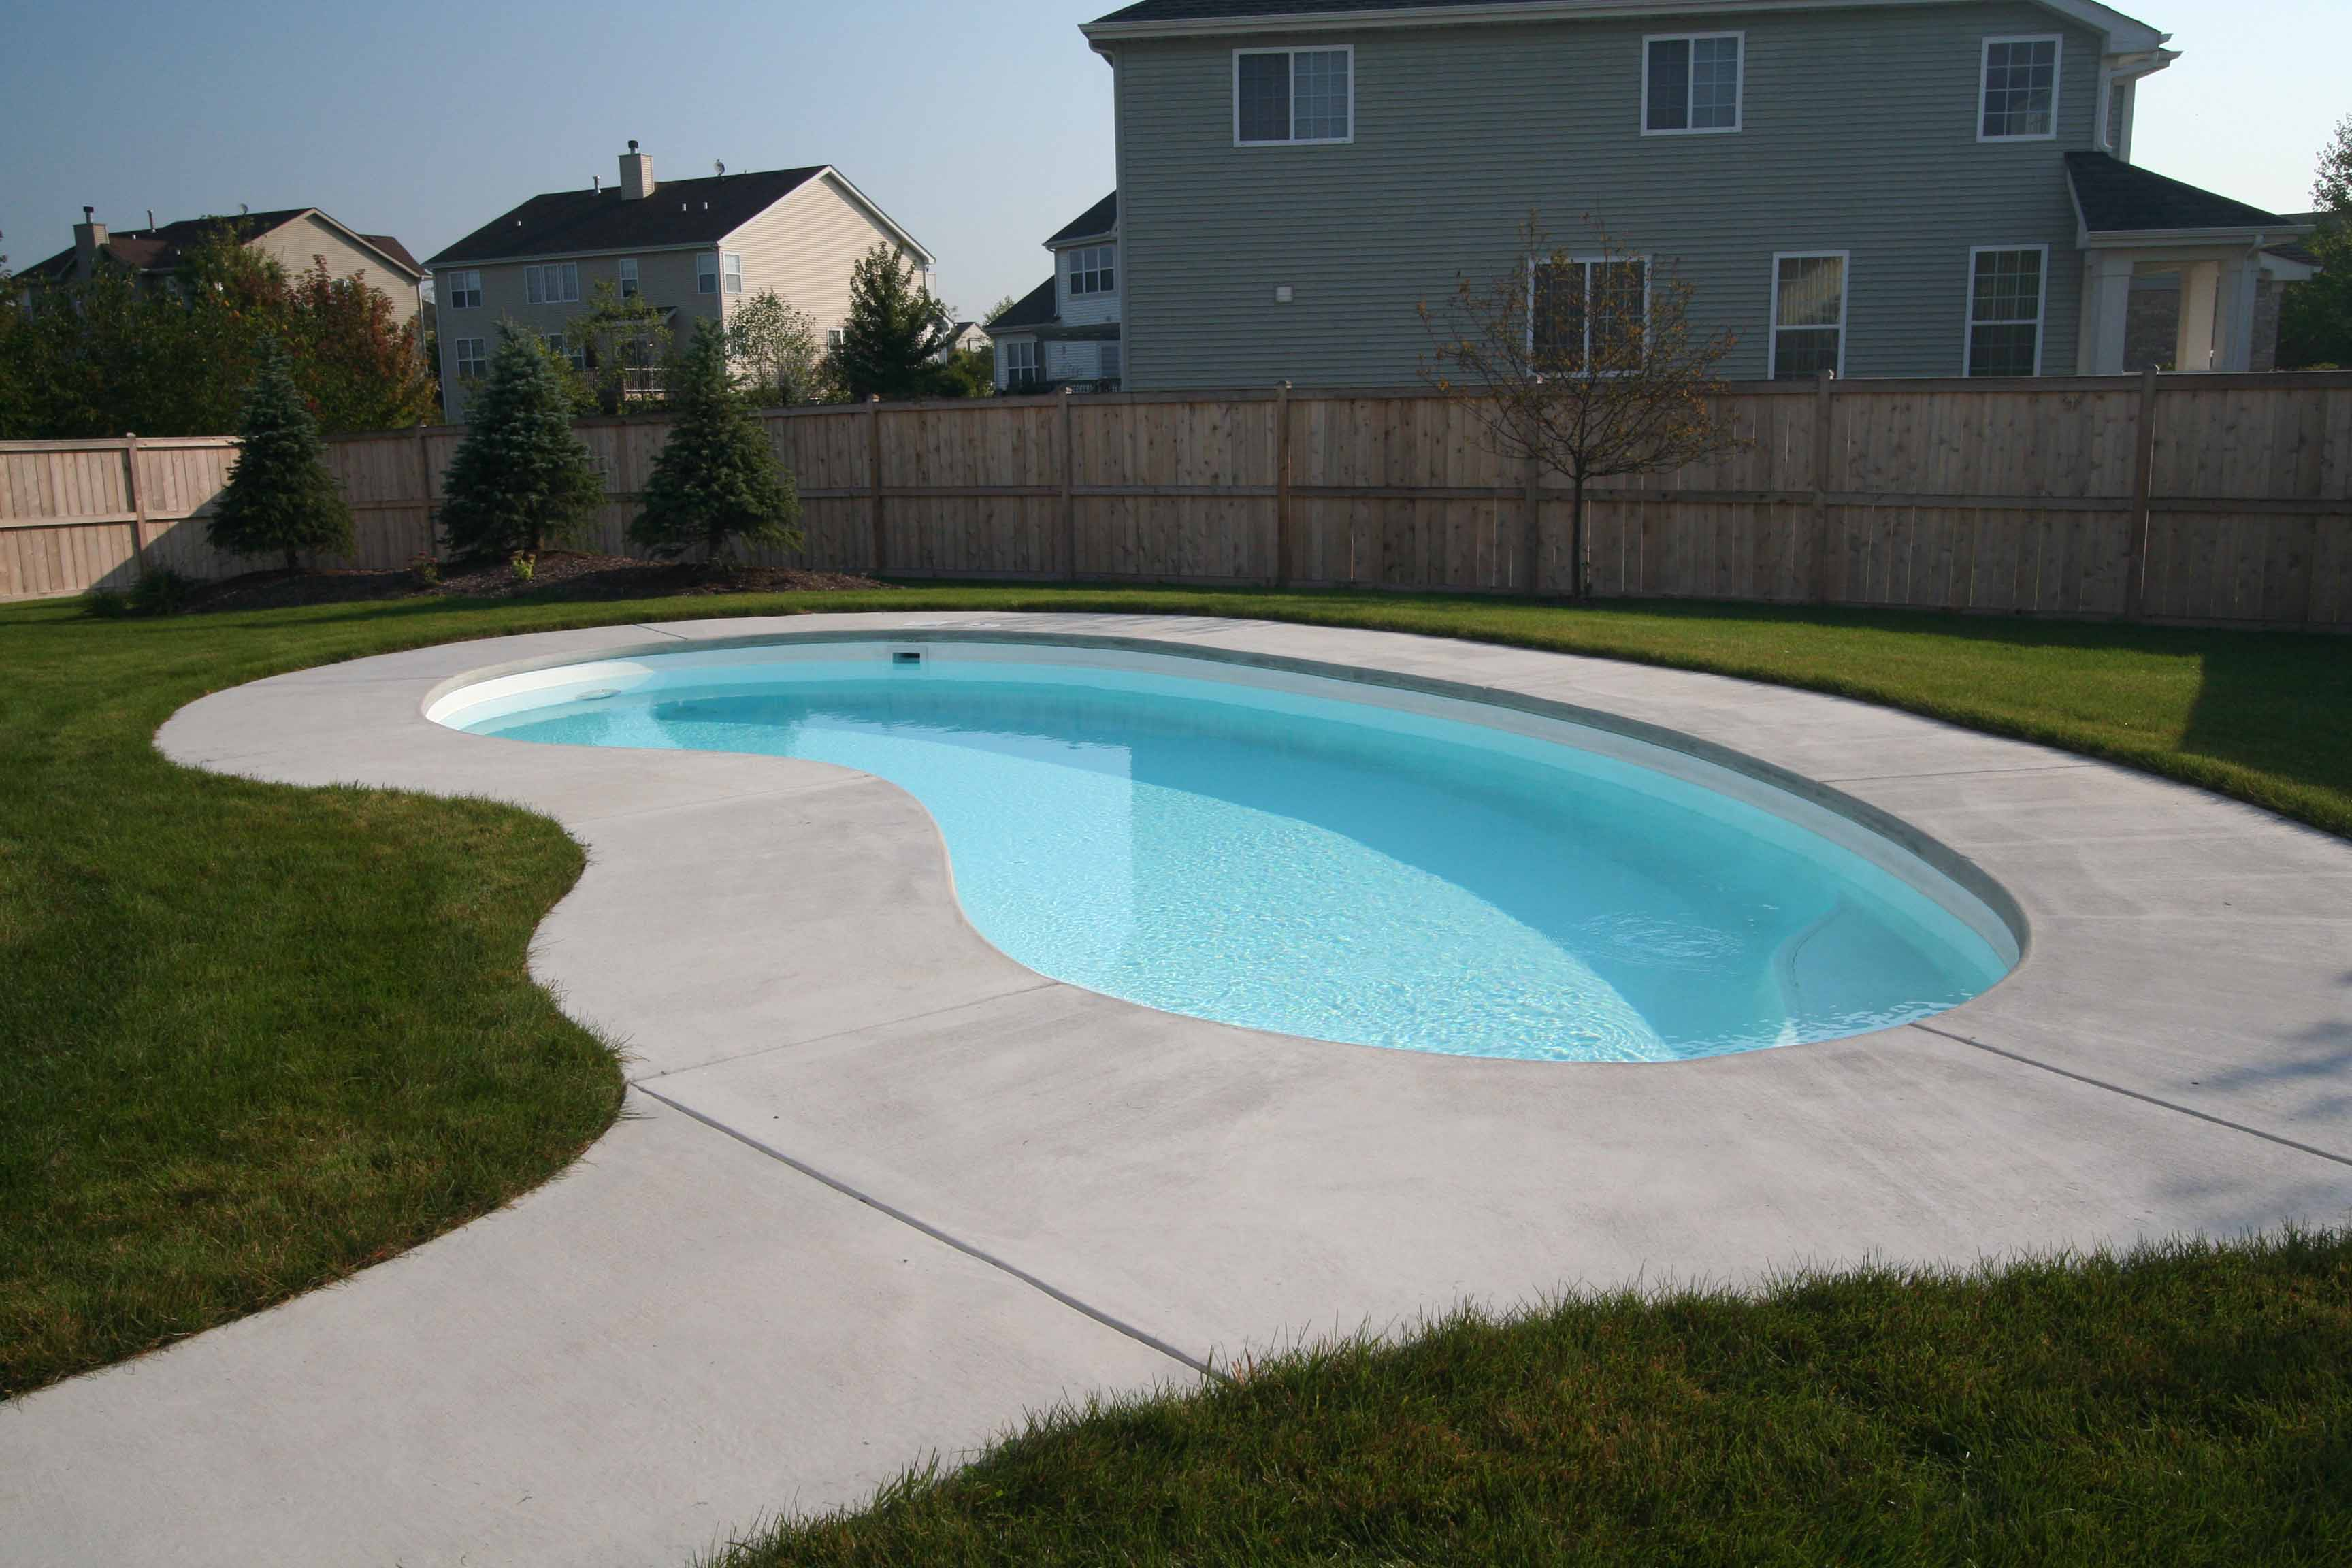 Swimming pool fibreglass ideas homesfeed Fibreglass pools vs concrete pools